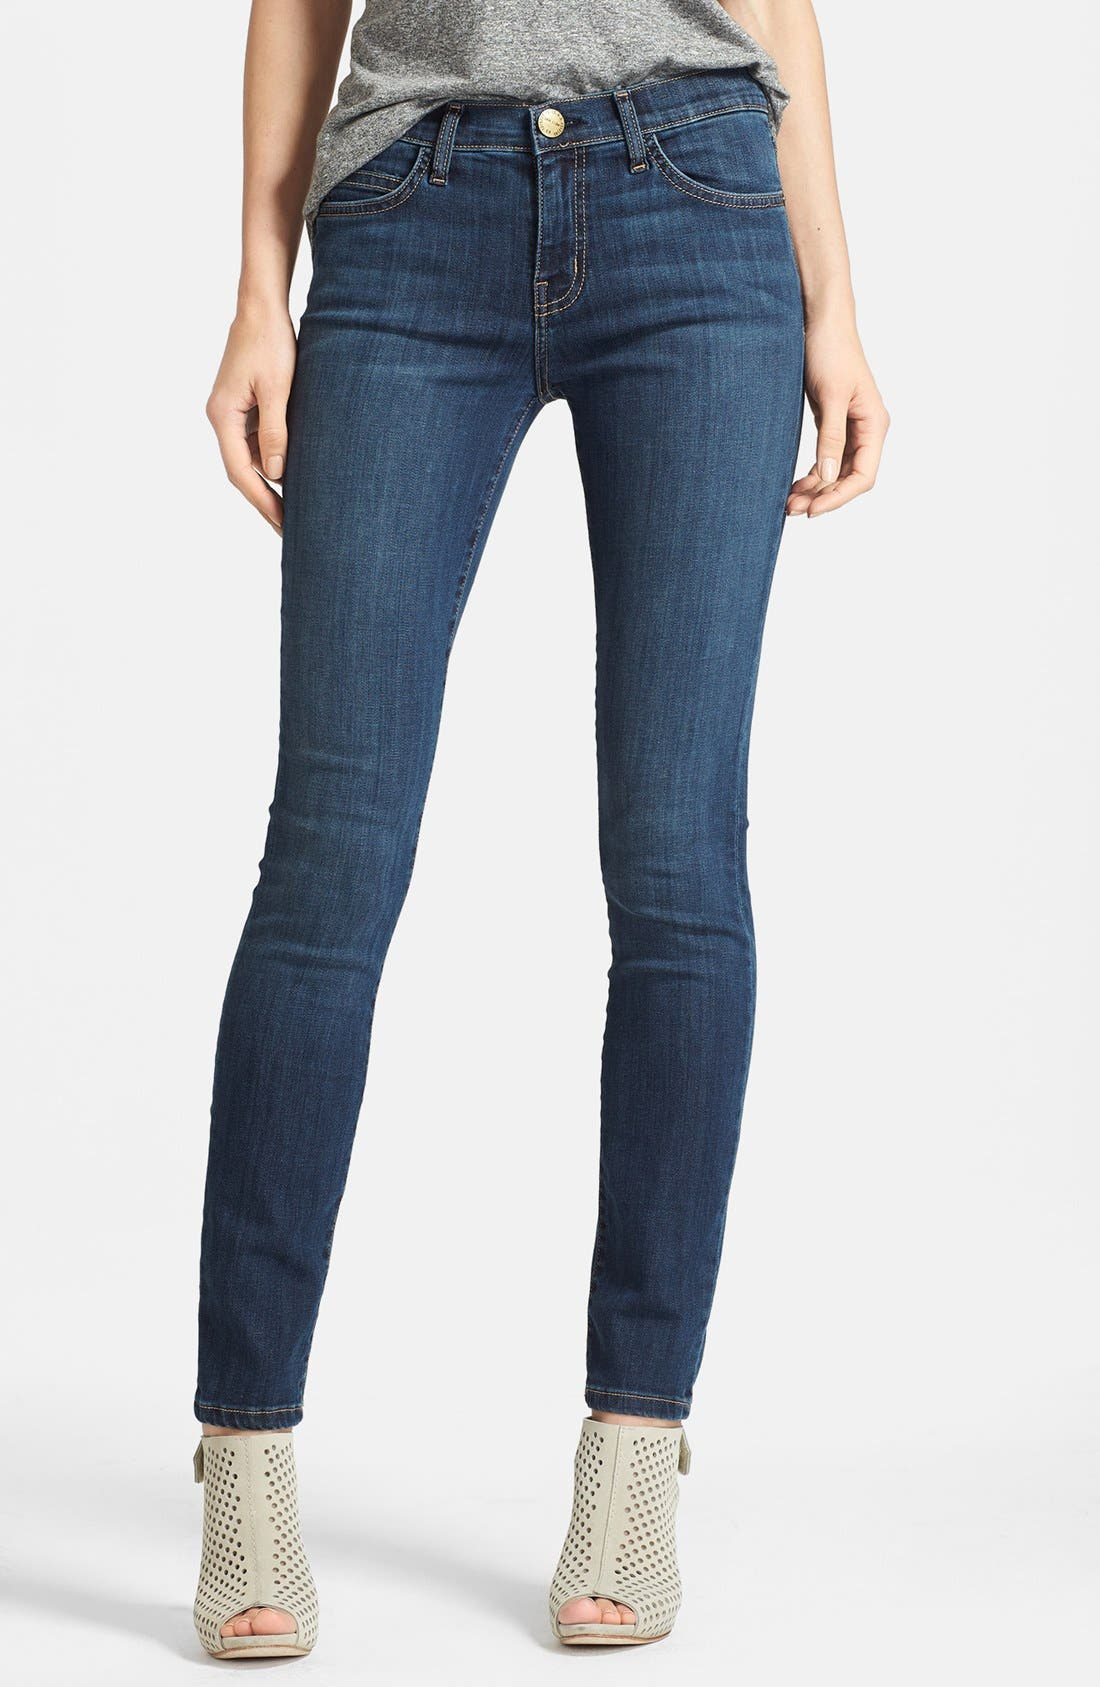 Main Image - Current/Elliott 'The Ankle' Skinny Jeans (Stagecoach)